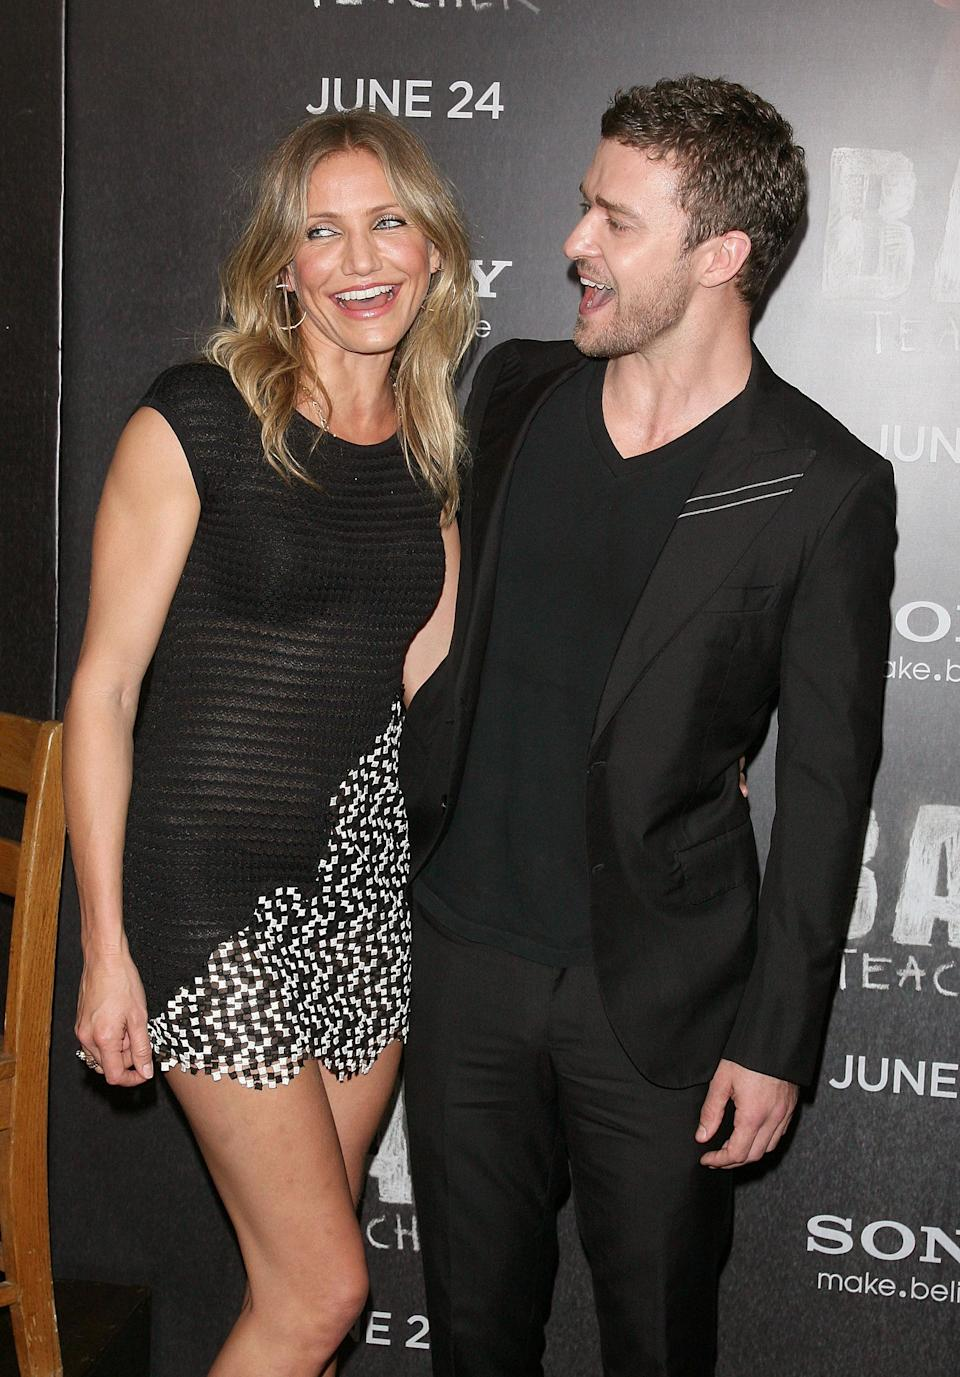 Let's be honest, break-ups can be messy, particularly in the glare of the spotlight, so it's good to see when two celebrities can put their differences aside and still be friends, as Cameron and Justin did - even eventually going on to star in 'Bad Teacher' together.